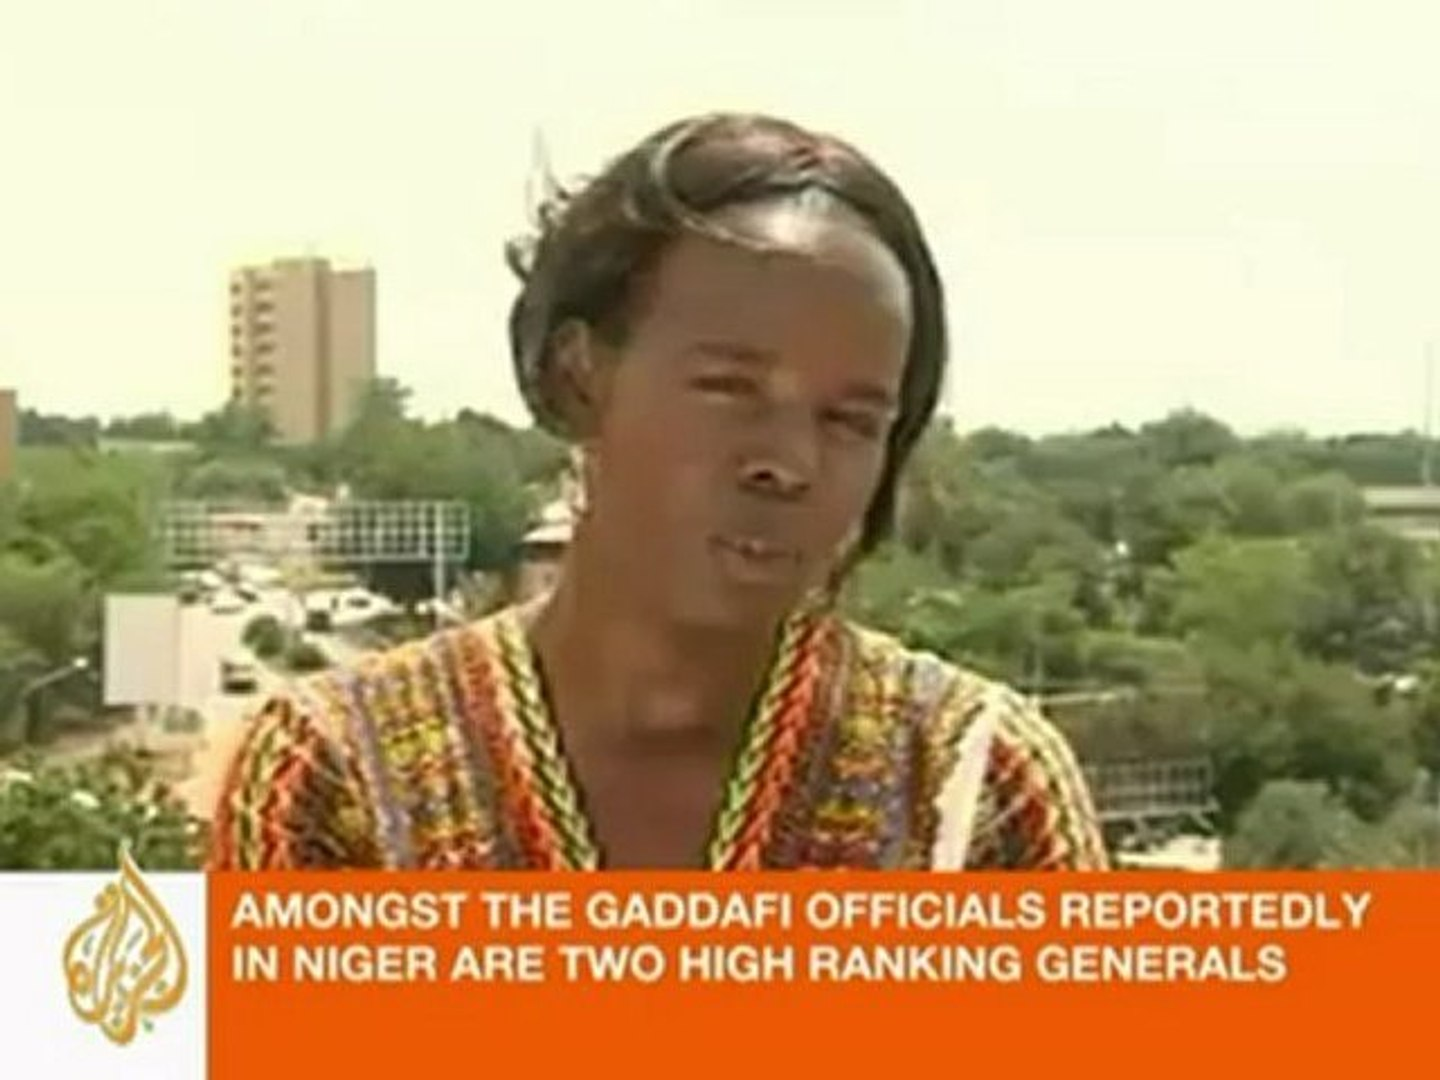 Yvonne Ndege reports on Gaddafi forces in Niger